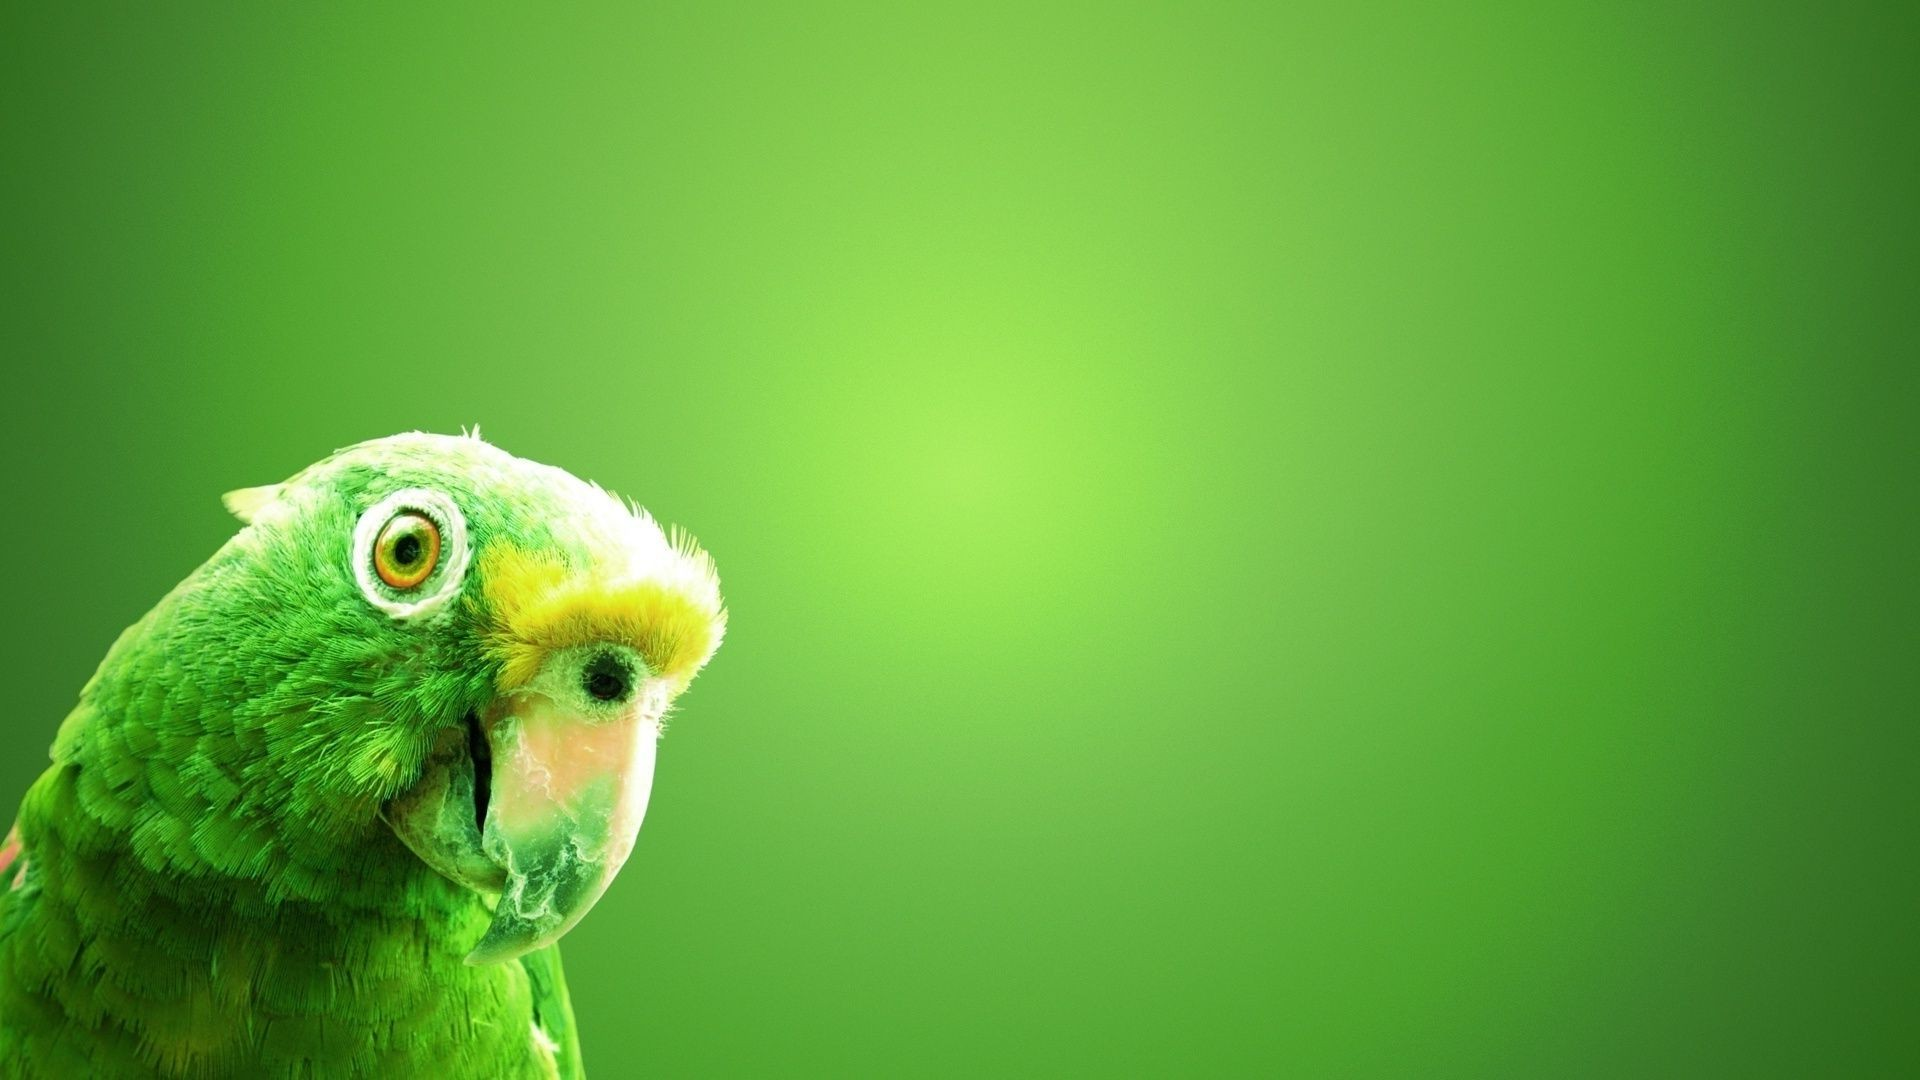 zaleny and green parrot background